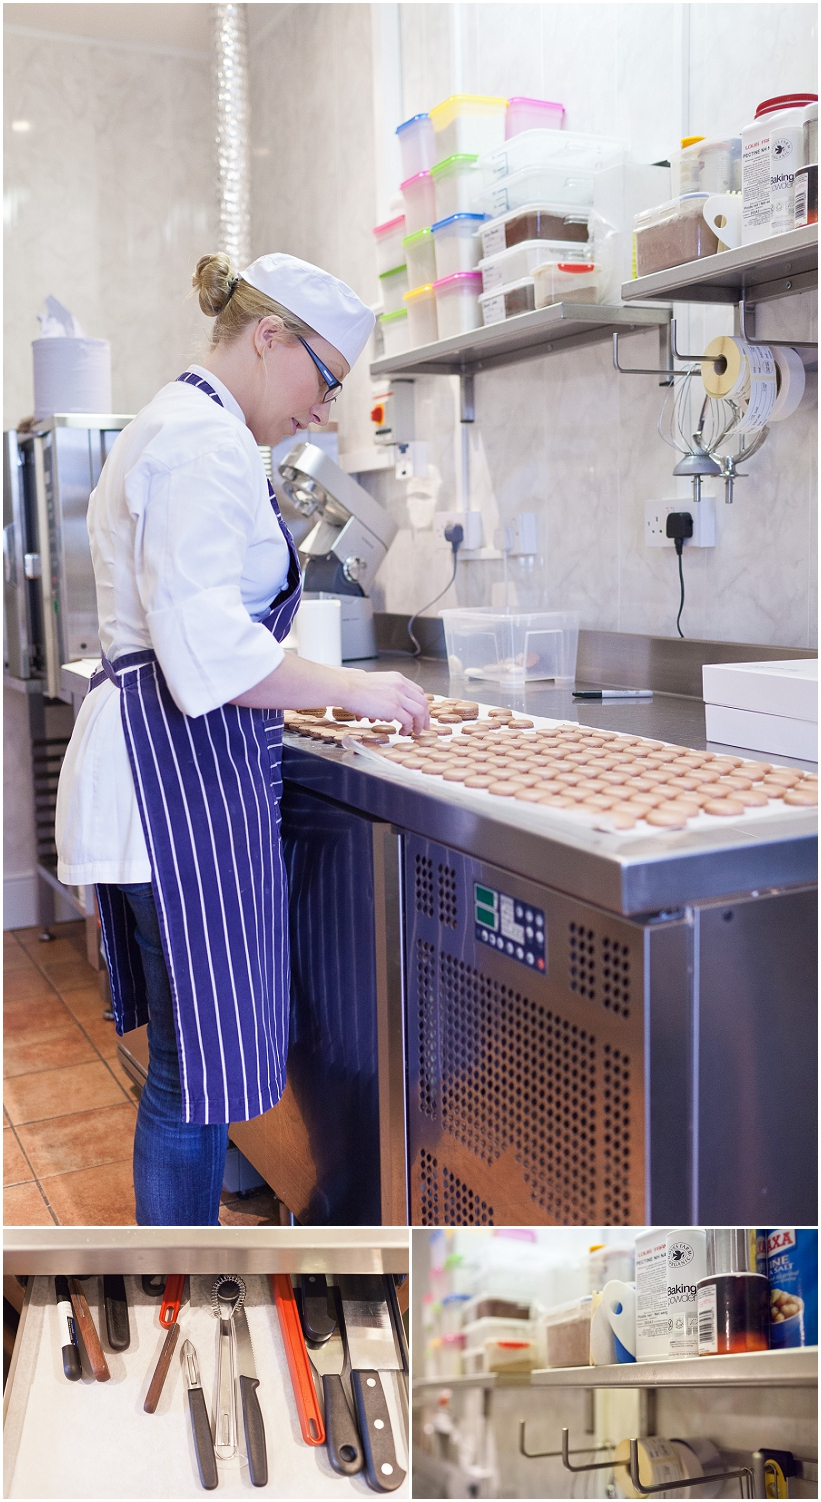 THE_CAKE_STAND_AT_WORK_494_WEB